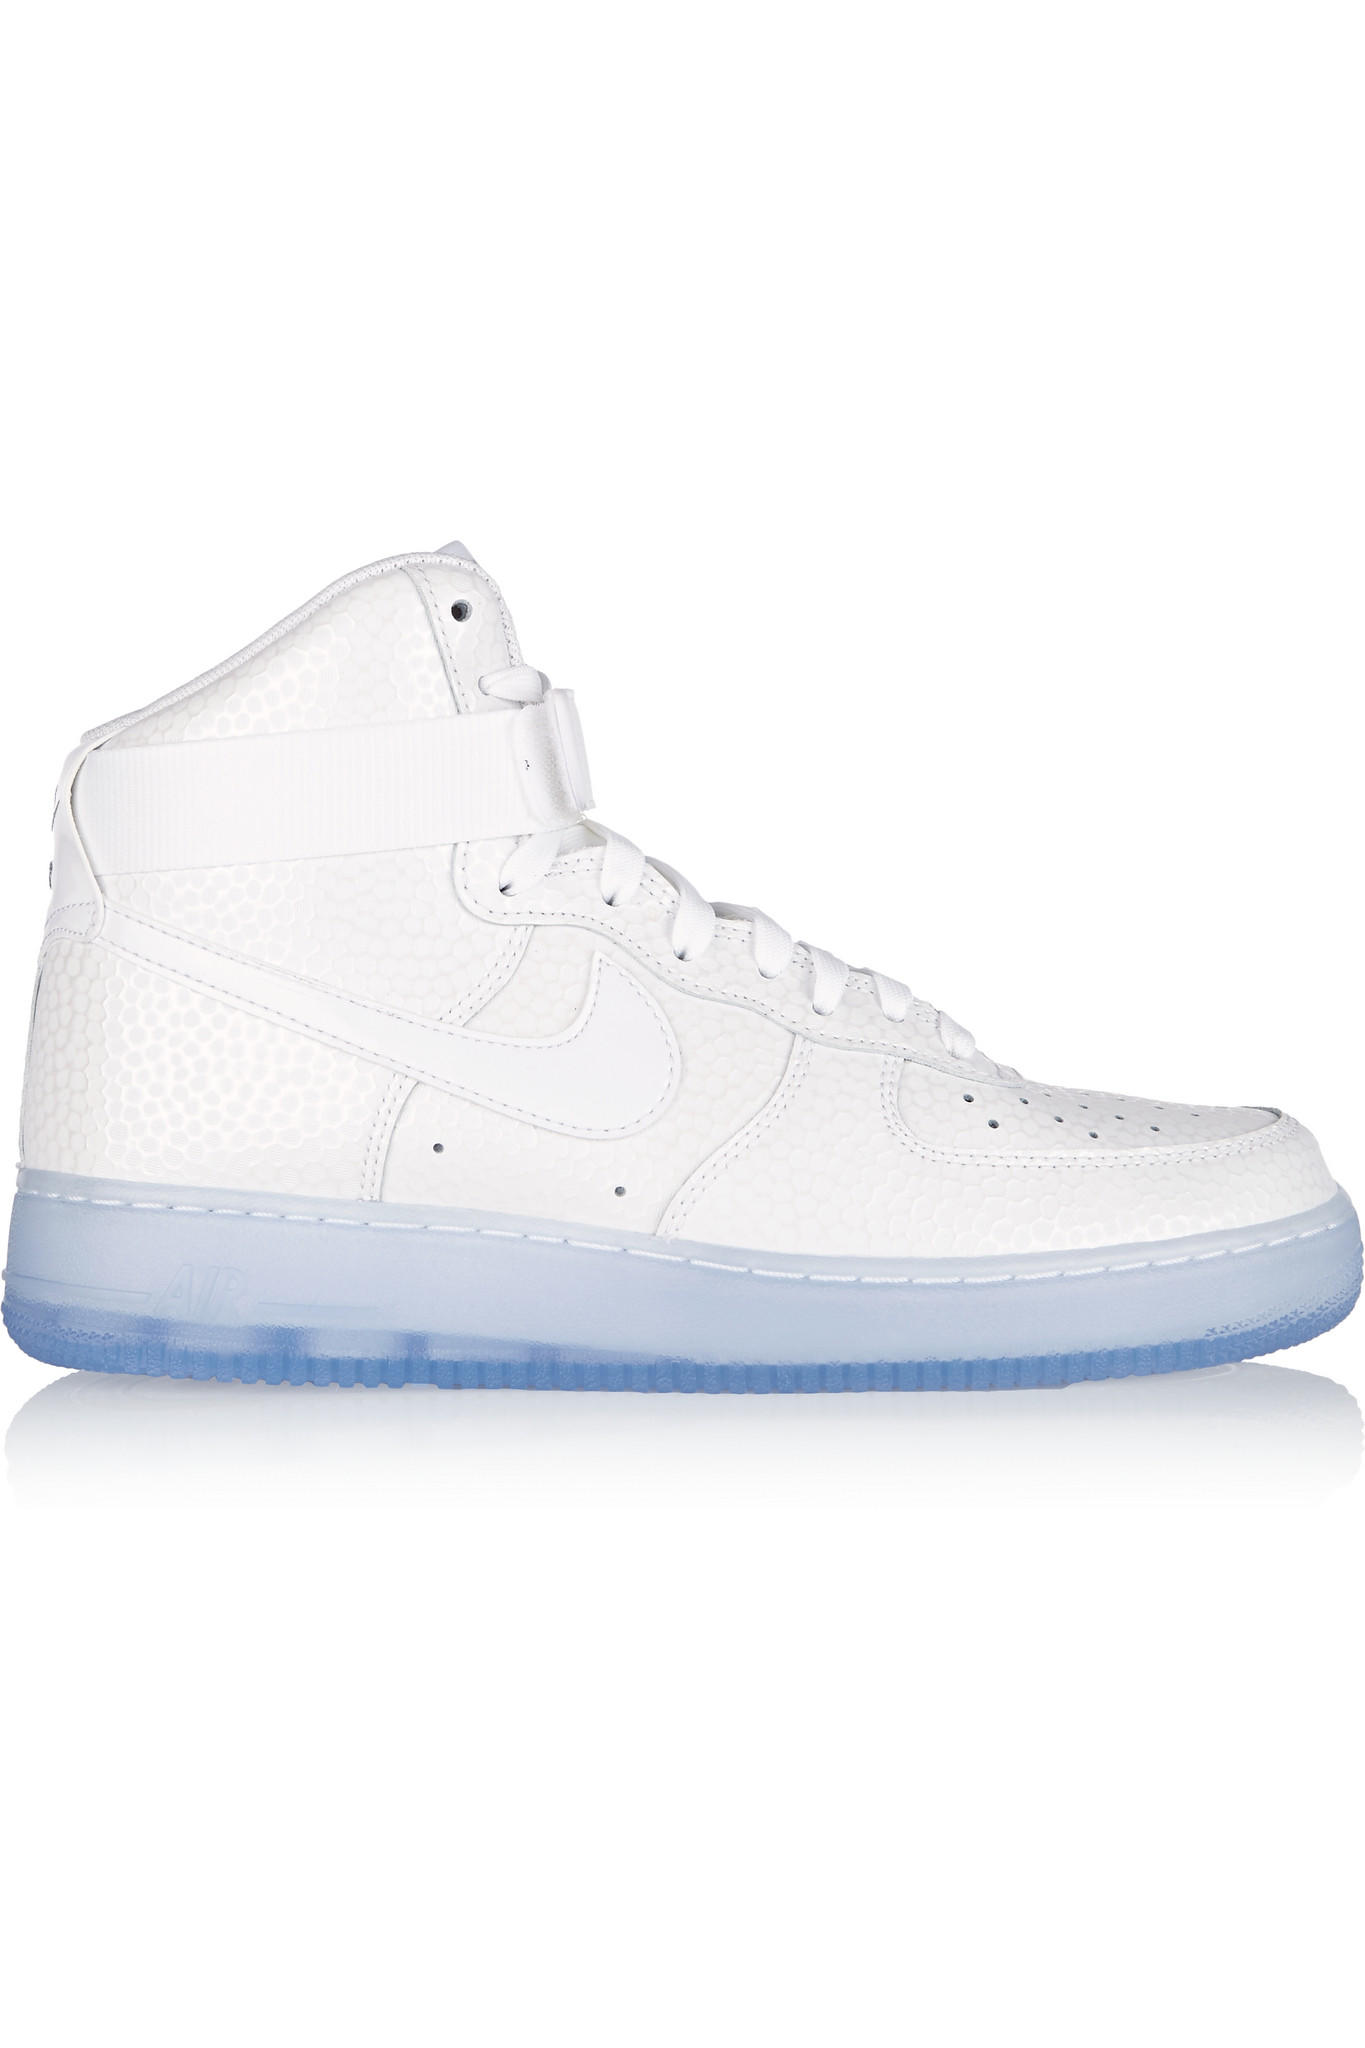 Nike - Air Force 1 Hi Premium from NET-A-PORTER ce5070f57a28